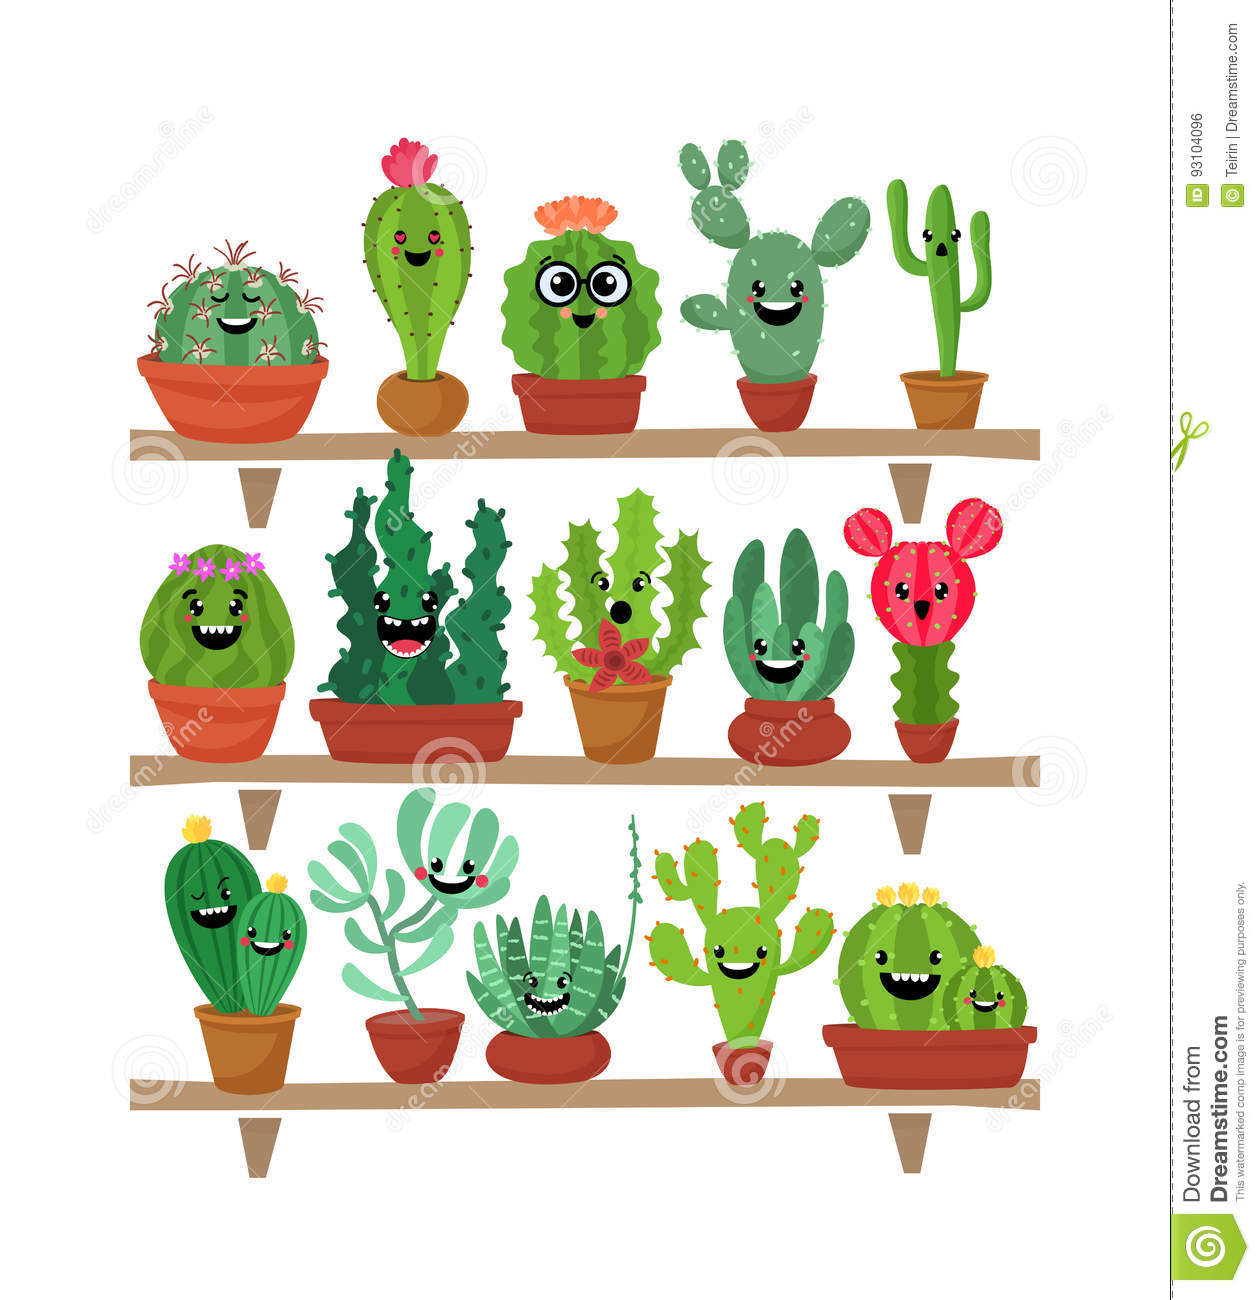 big set of cute cartoon cactus and succulents with funny faces